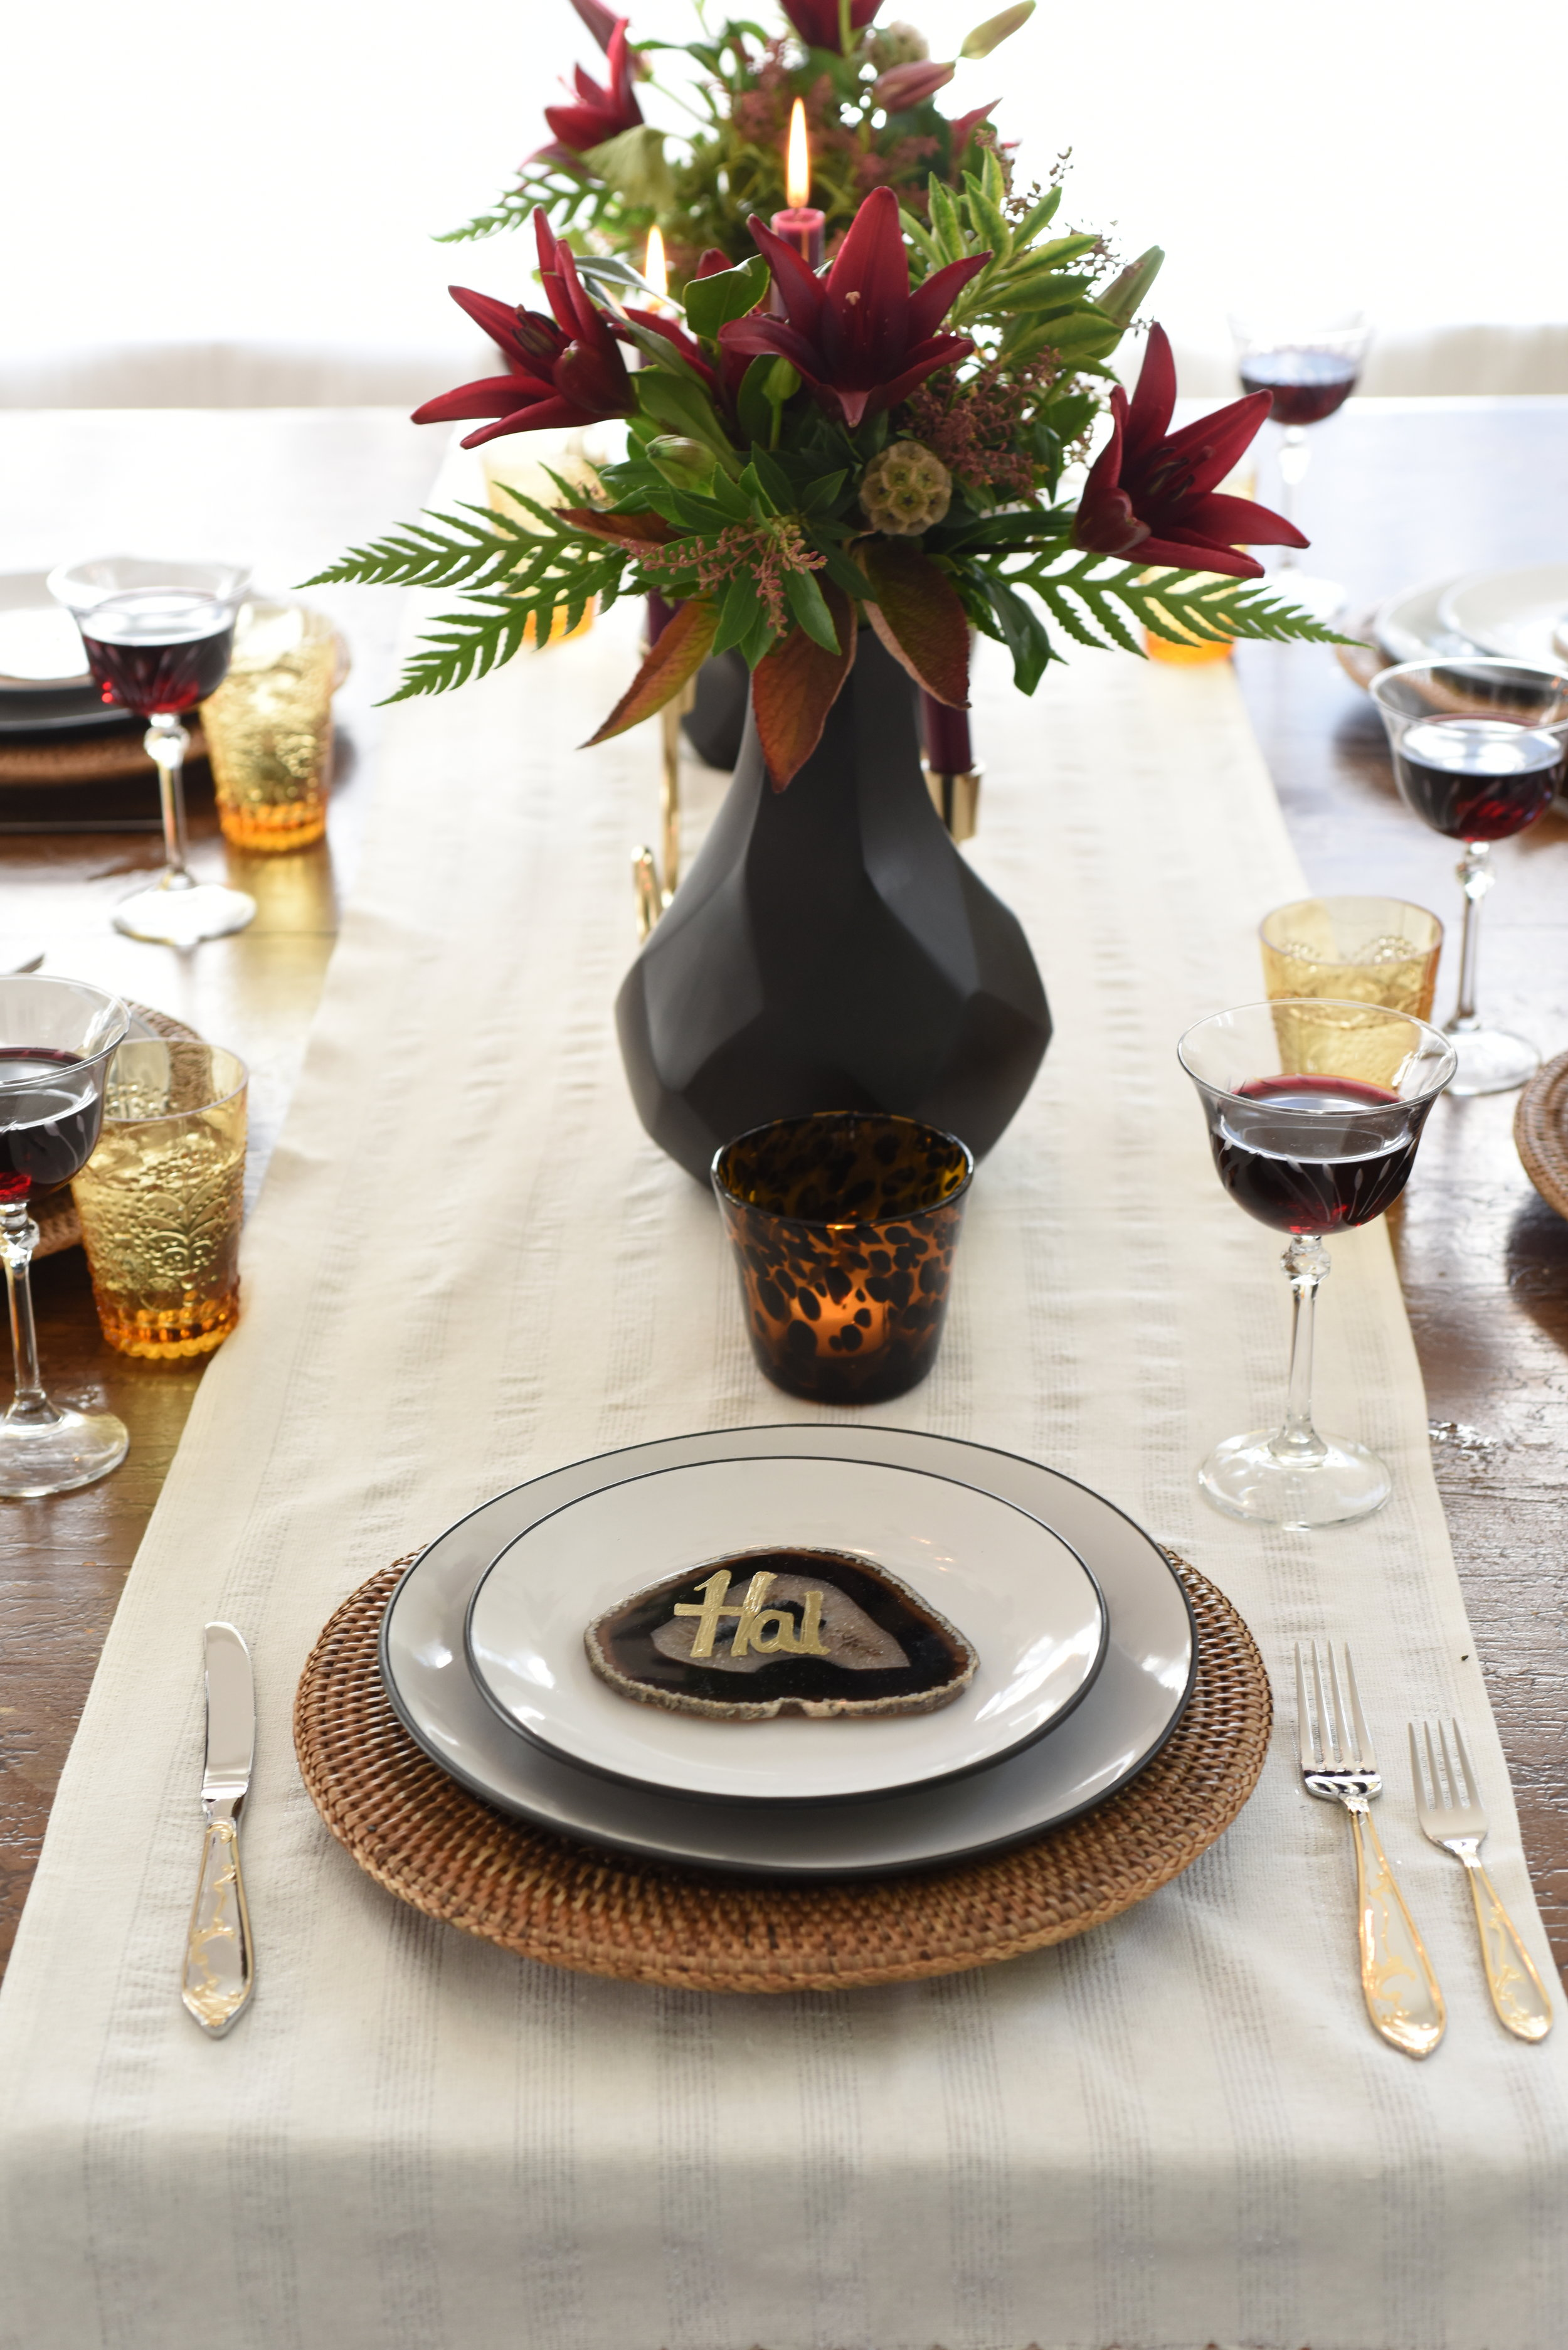 425 Magazine - Lead Designer & Stylist - How to set a Holiday tablescape two waysPrint Spread & Digital